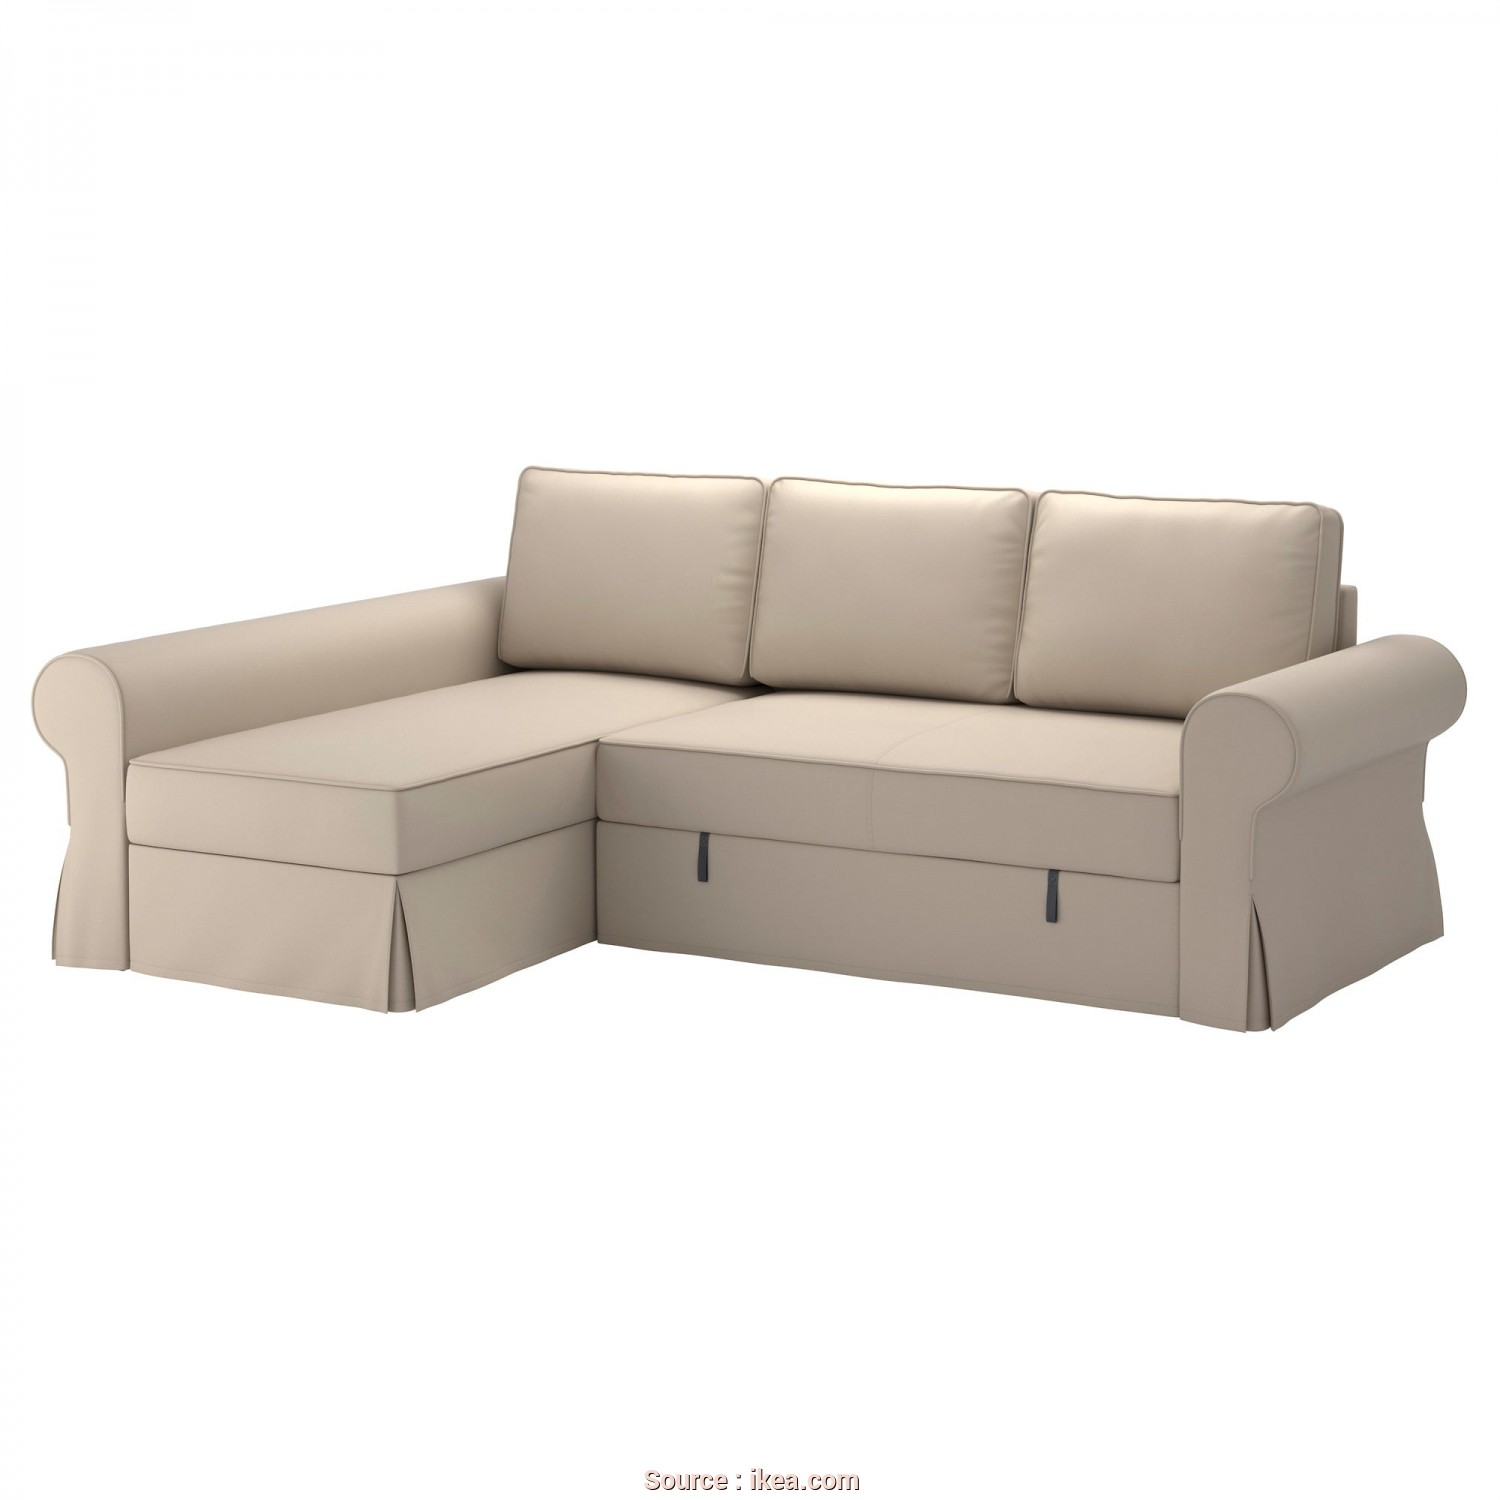 Backabro Bettsofa Ikea, Esclusivo BACKABRO Cover Sofa-Bed With Chaise Longue Ramna Beige, IKEA